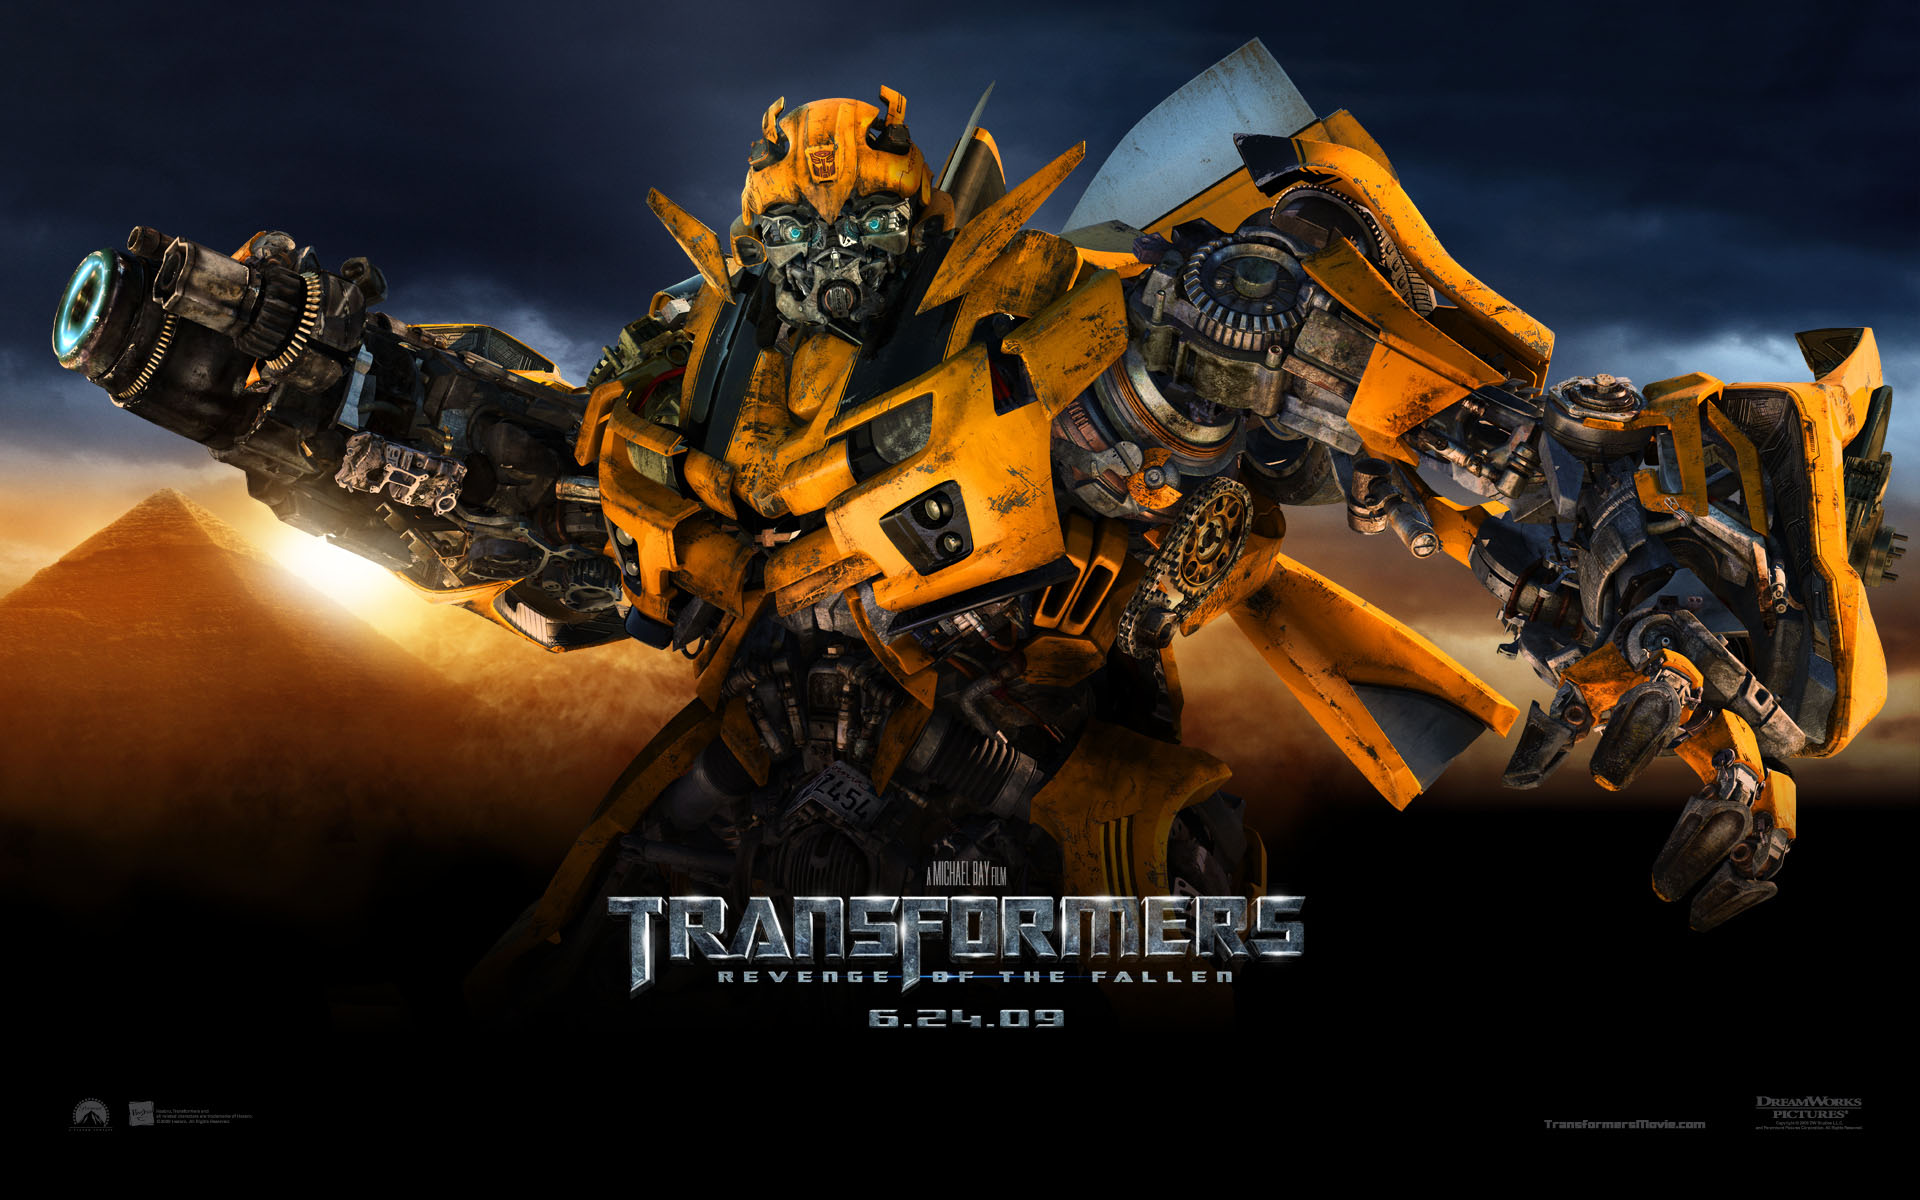 bumble bee from transformers revenge of the fallen movie desktop